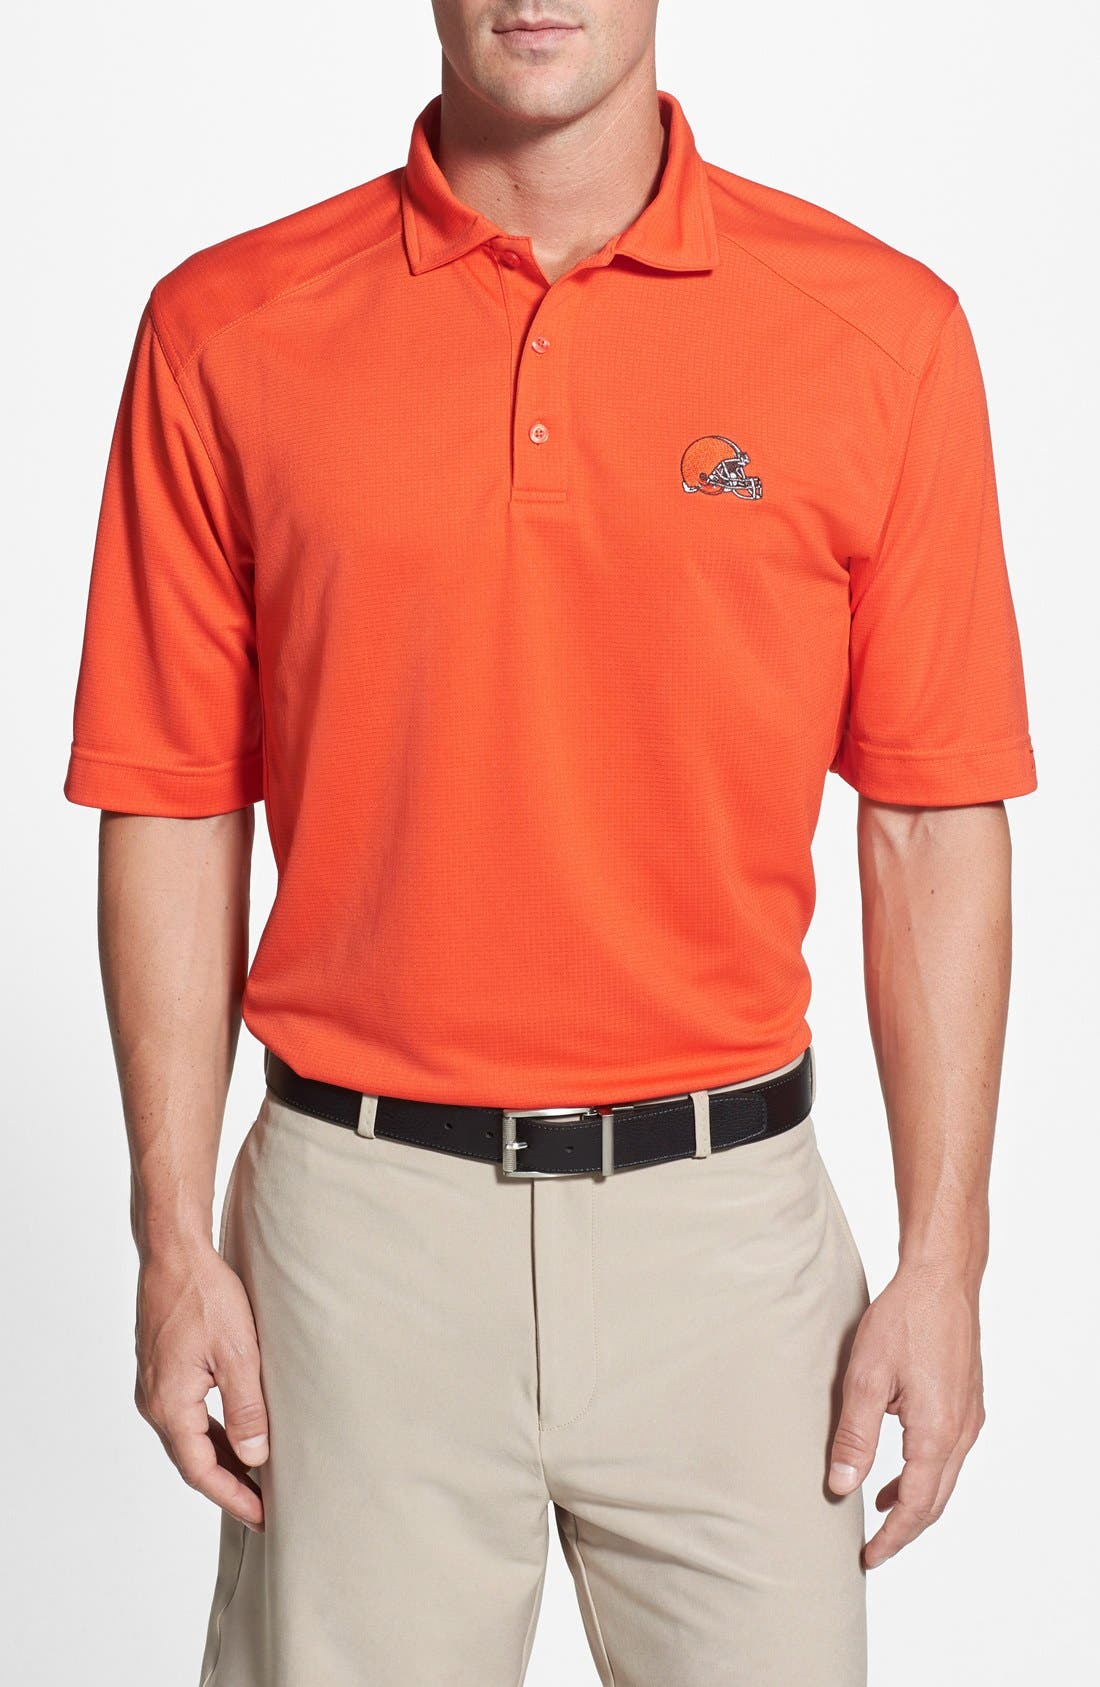 Cleveland Browns - Genre DryTec Moisture Wicking Polo,                         Main,                         color, College Orange